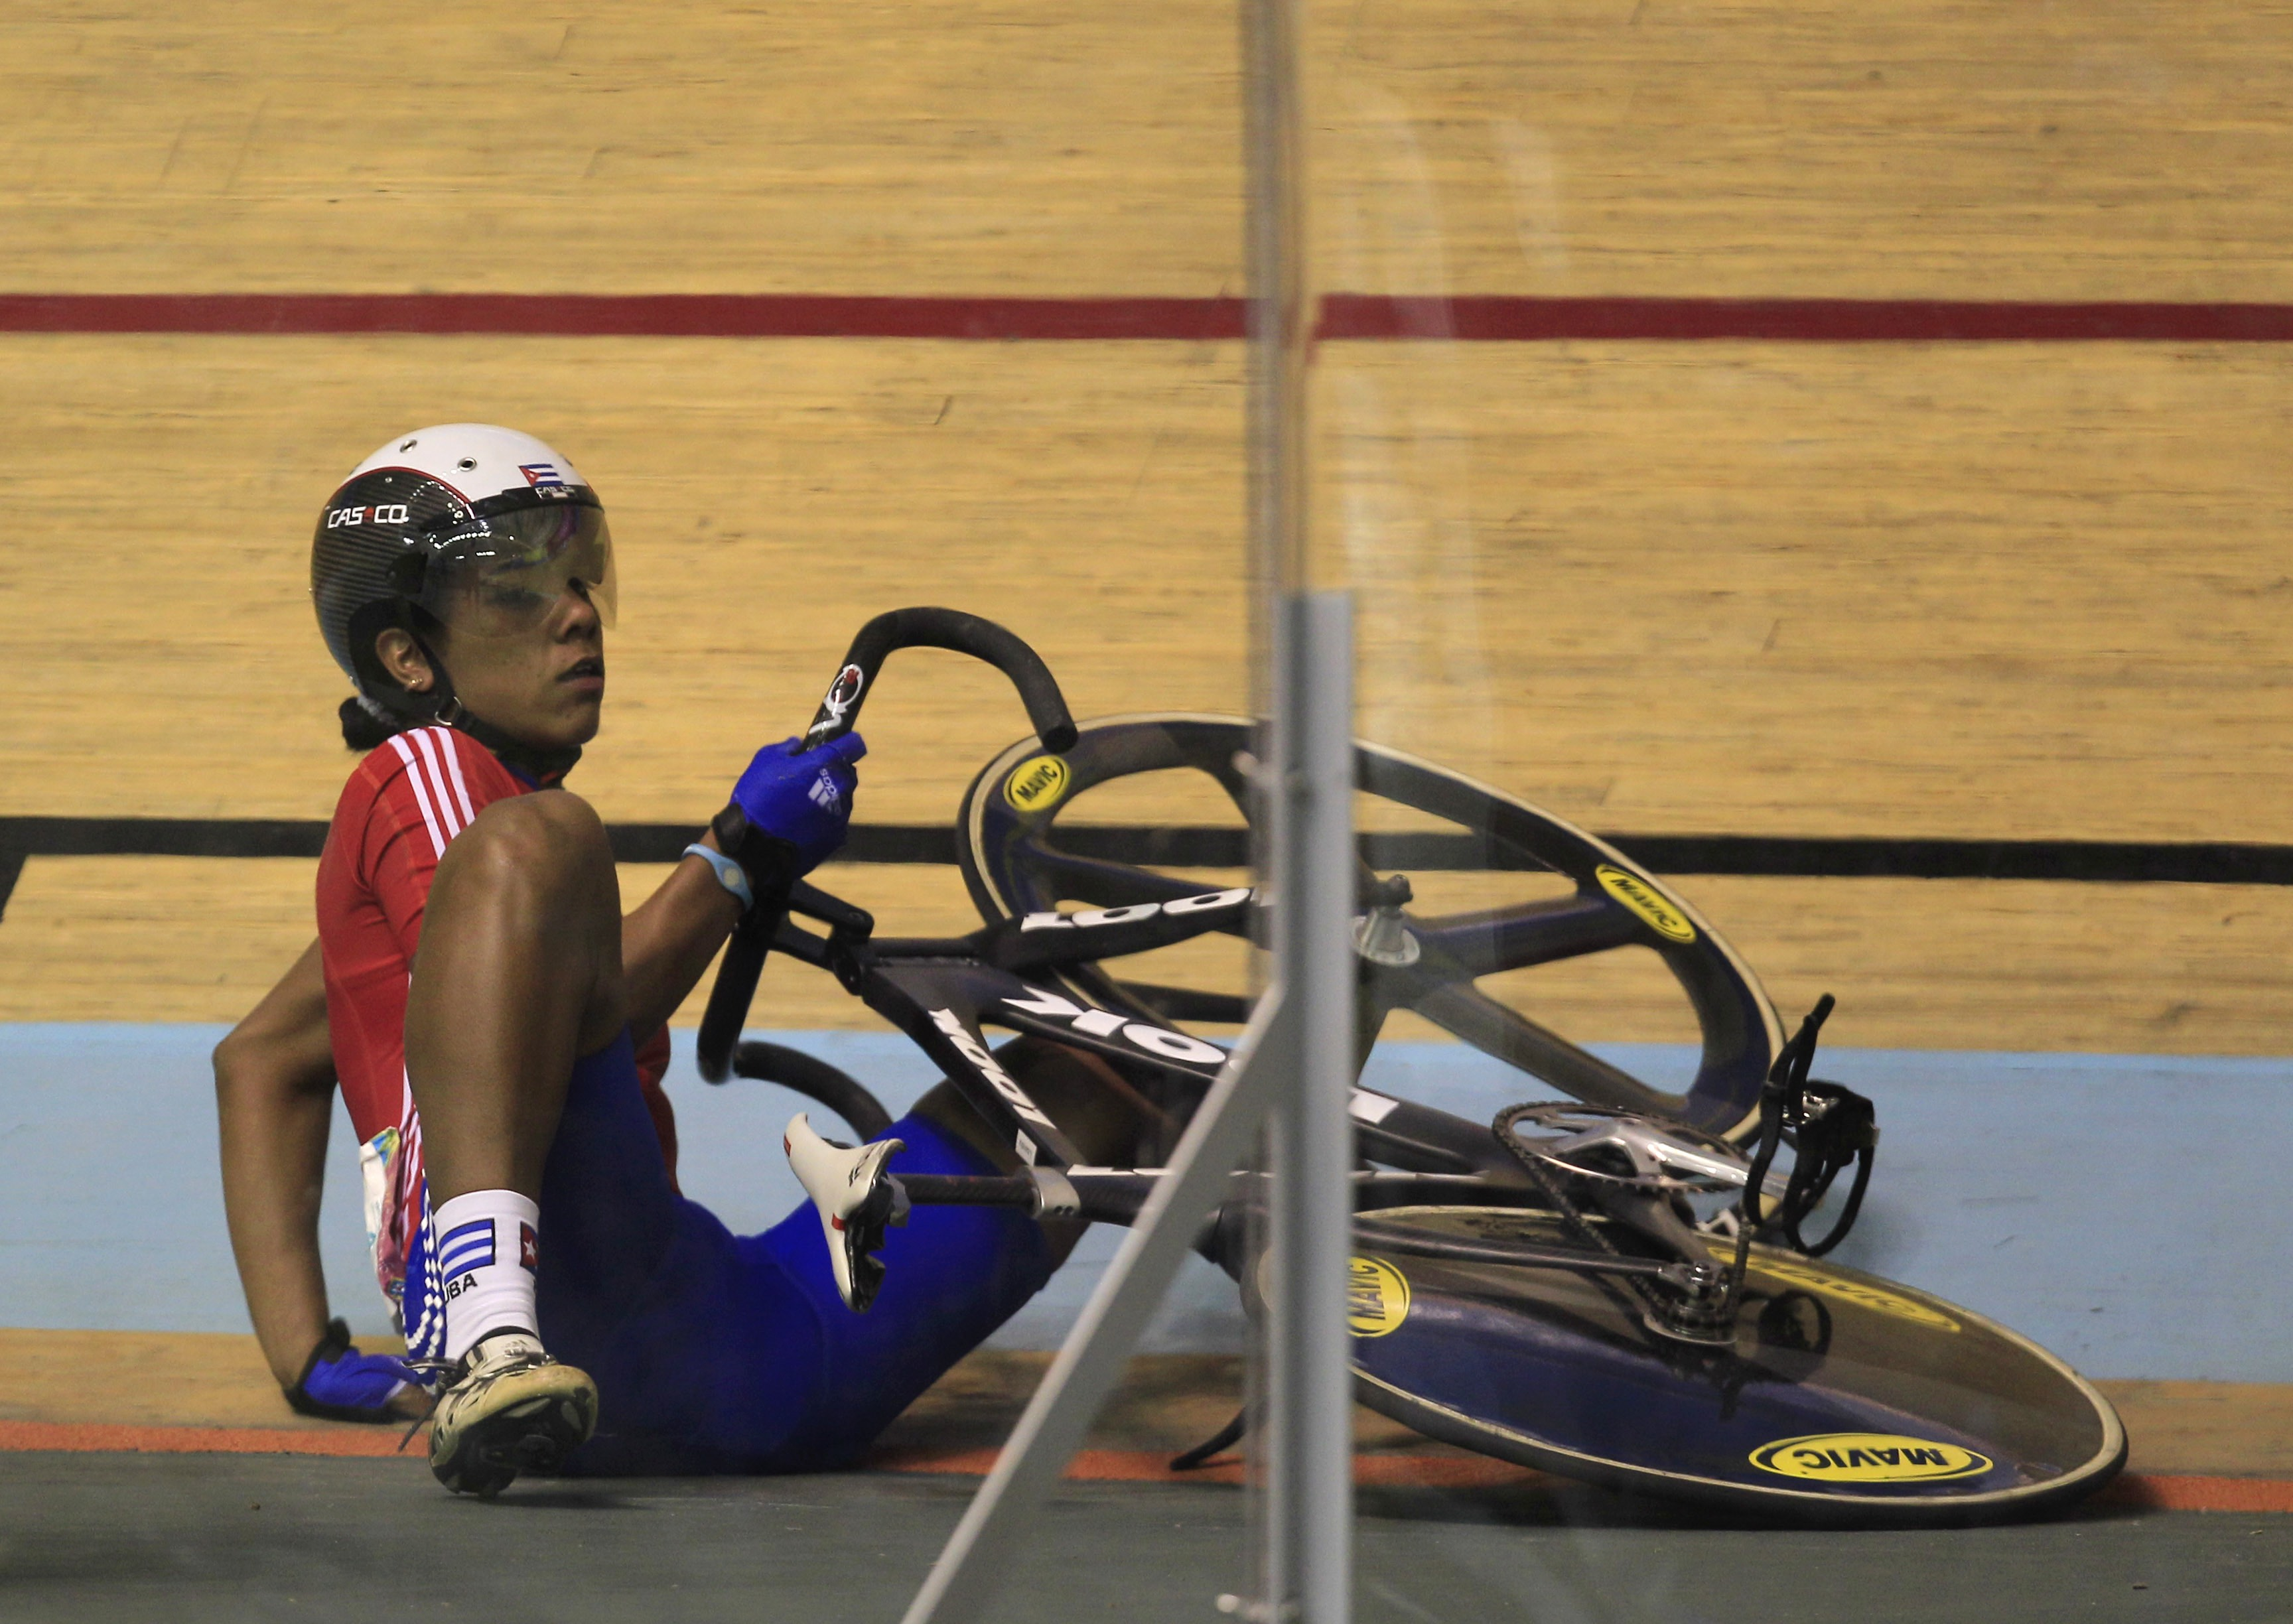 Cuba's Lisandra Guerra lies on the track after falling during the cycling women's keirin final at the Pan American Games in Guadalajara, Mexico, Thursday, Oct. 20, 2011. (AP Photo/Martin Mejia)